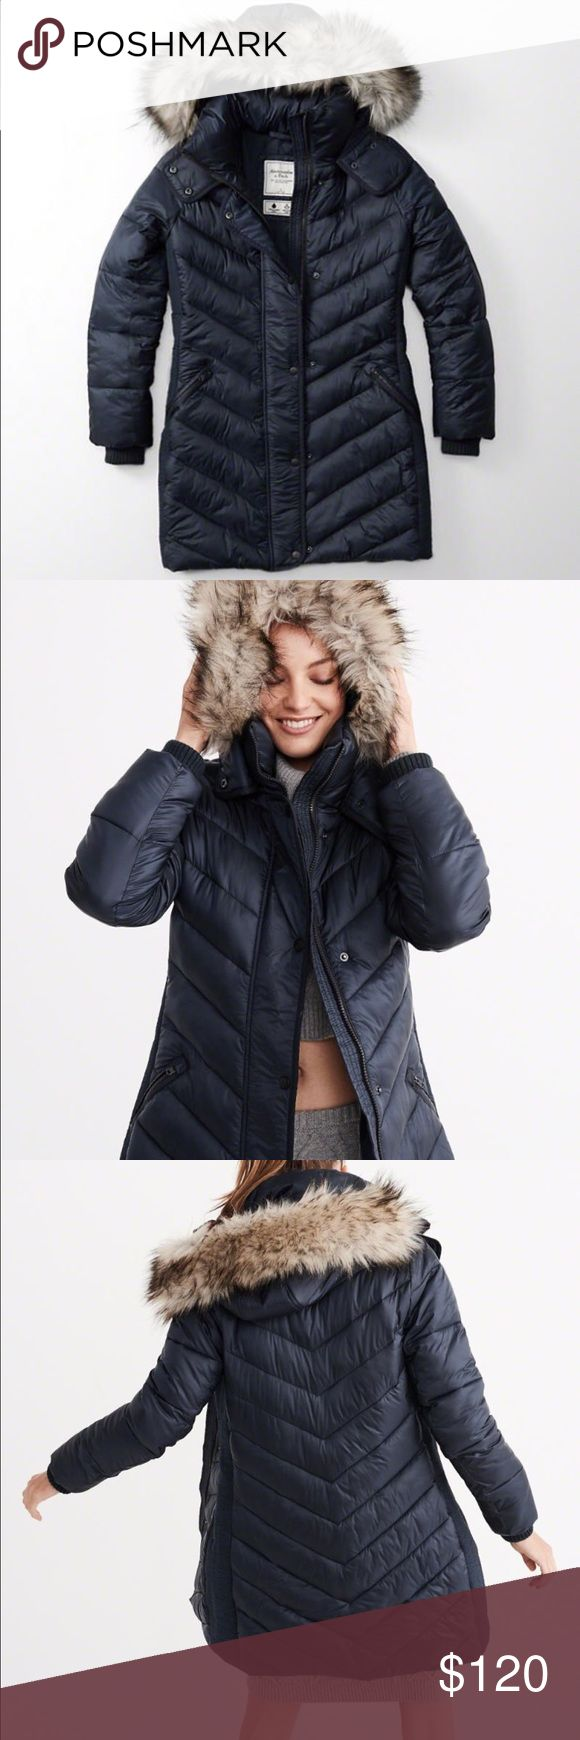 Quited parka puffer jacket Brand new - Navy blue Abercrombie & Fitch Jackets & Coats Puffers